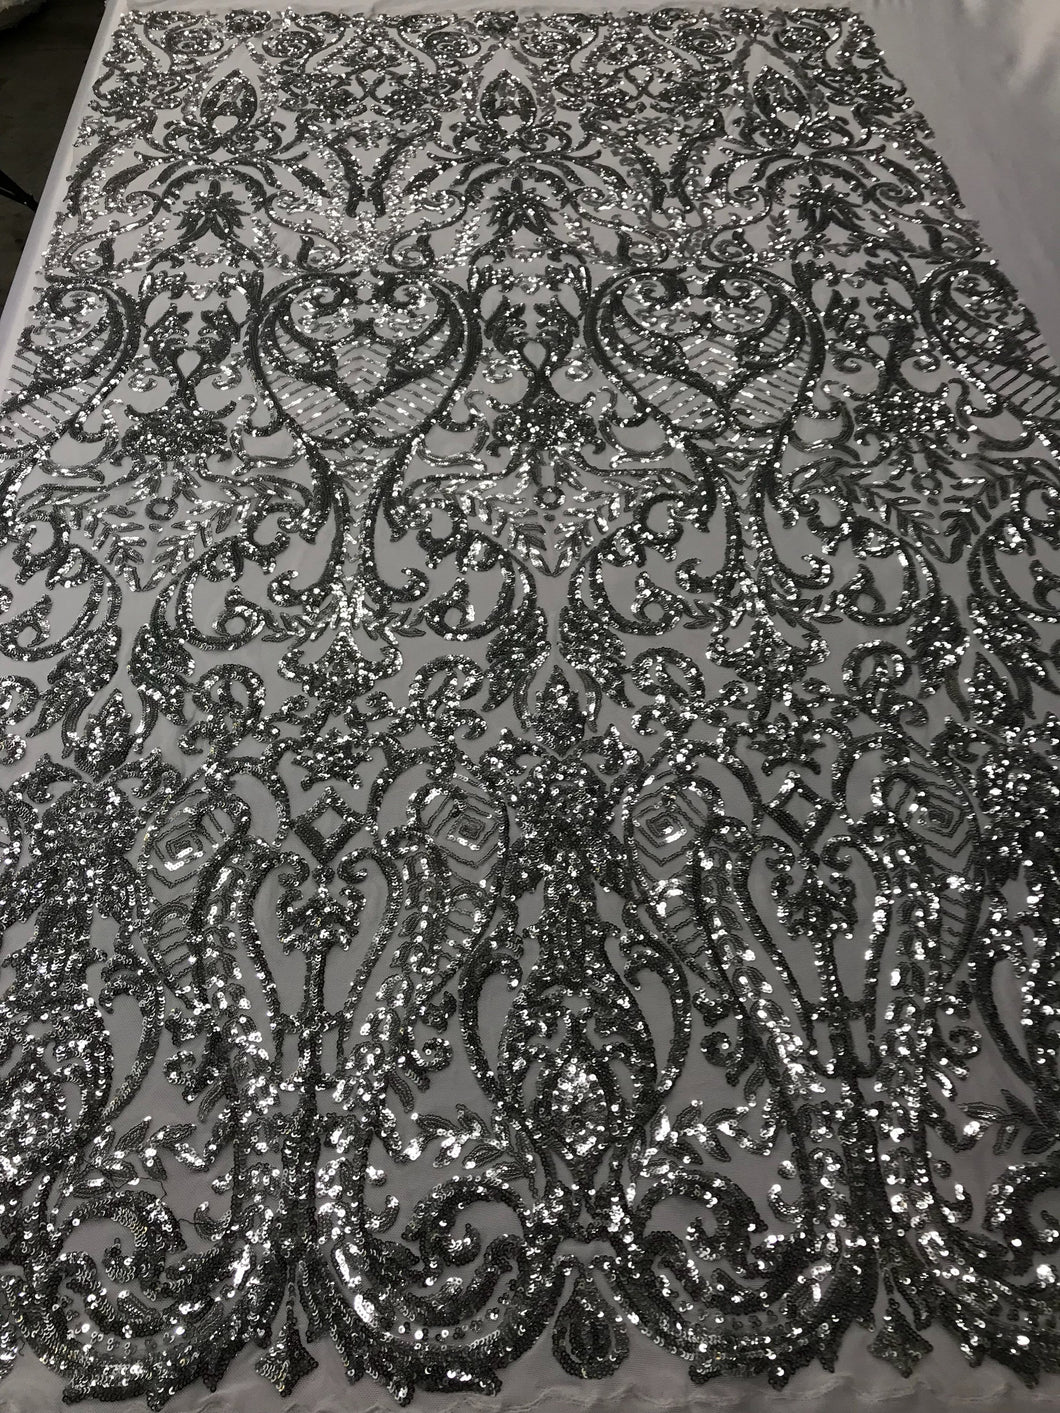 4 Way Stretch Fabric Sequins By The Yard - Silver Embroidered Mesh Dress Top Fashion For Bridal Veil Wedding Lace Decoration